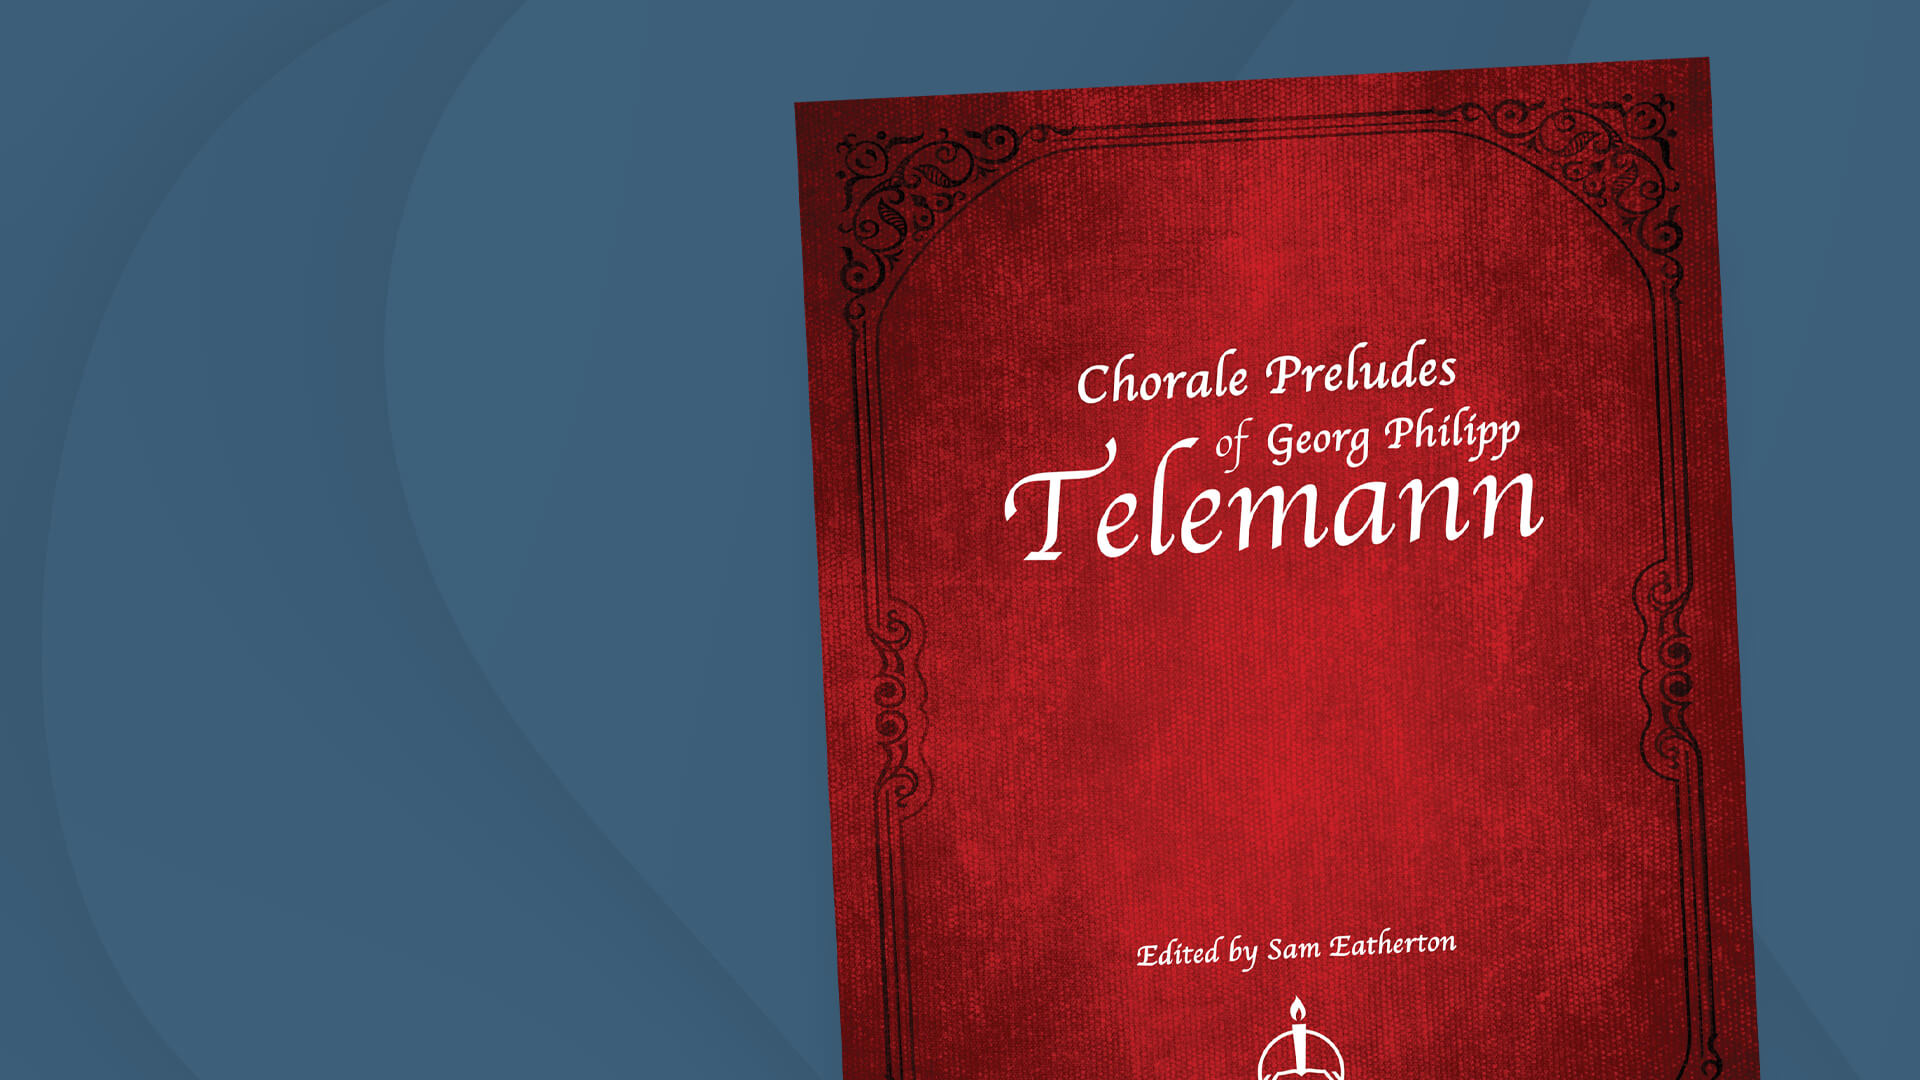 Music of the Month: Chorale Preludes of Georg Philipp Telemann